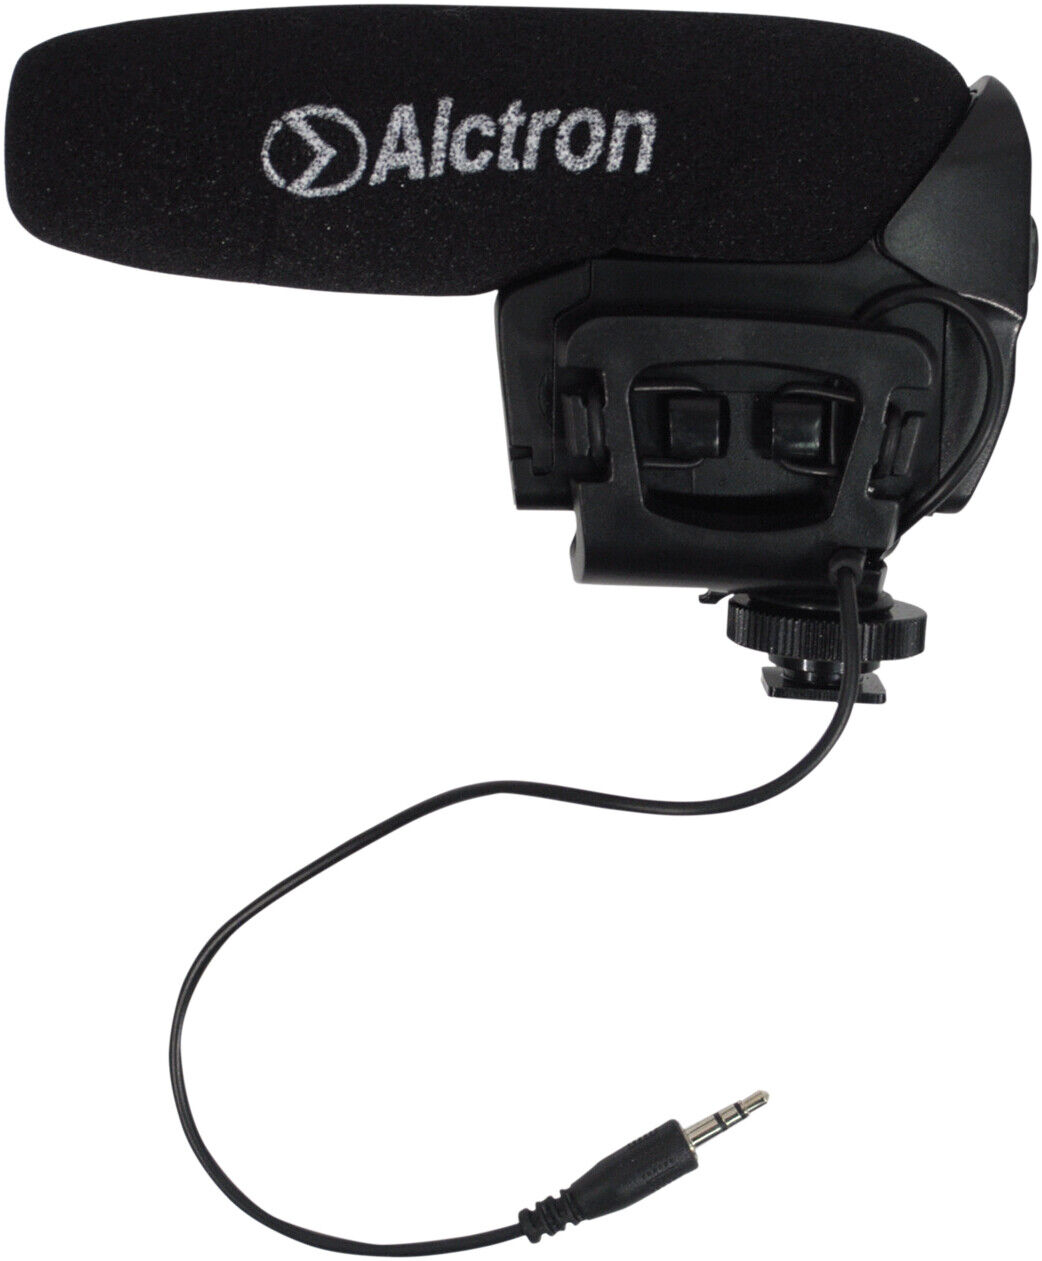 Alctron Broadcast Live Recording Video Microphone, Professional 3 positions